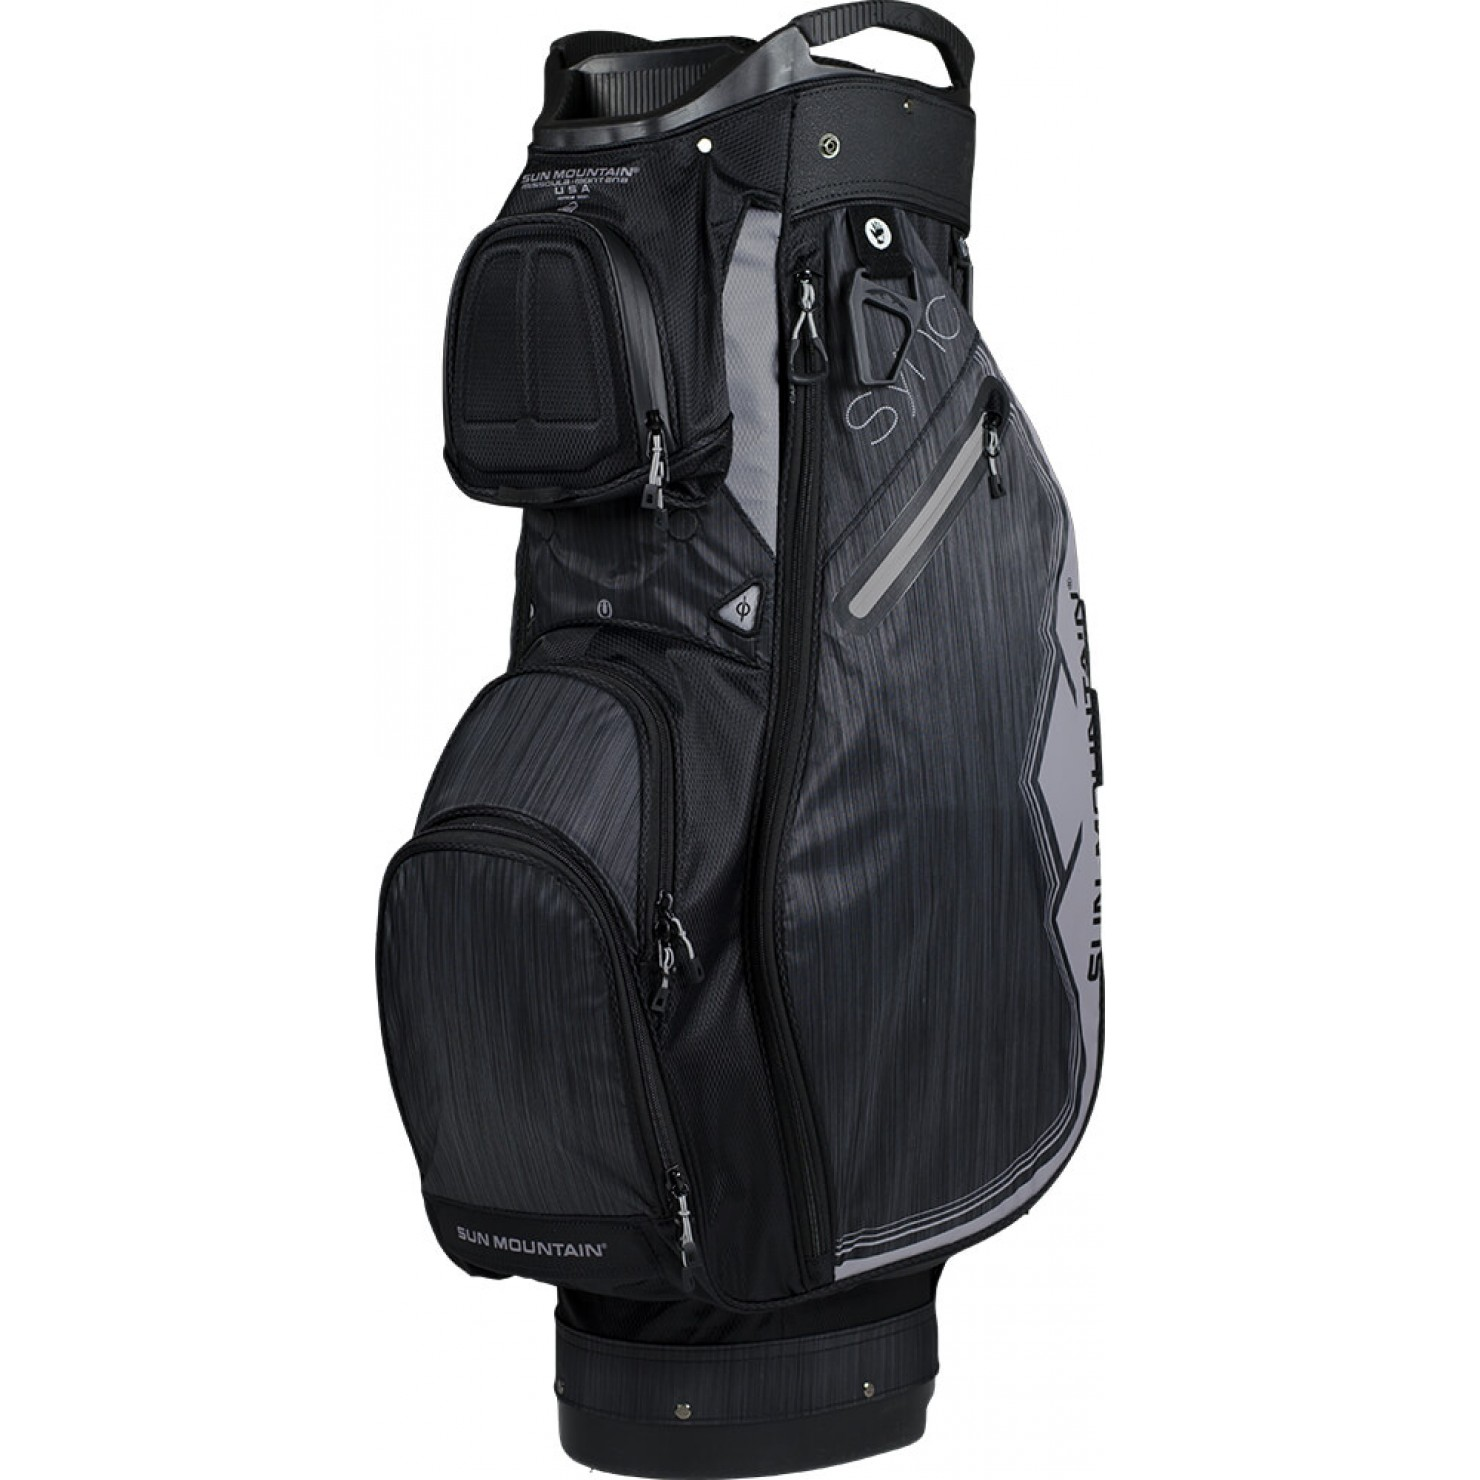 Sun Mountain 2018 Women's Synch Cart Bag